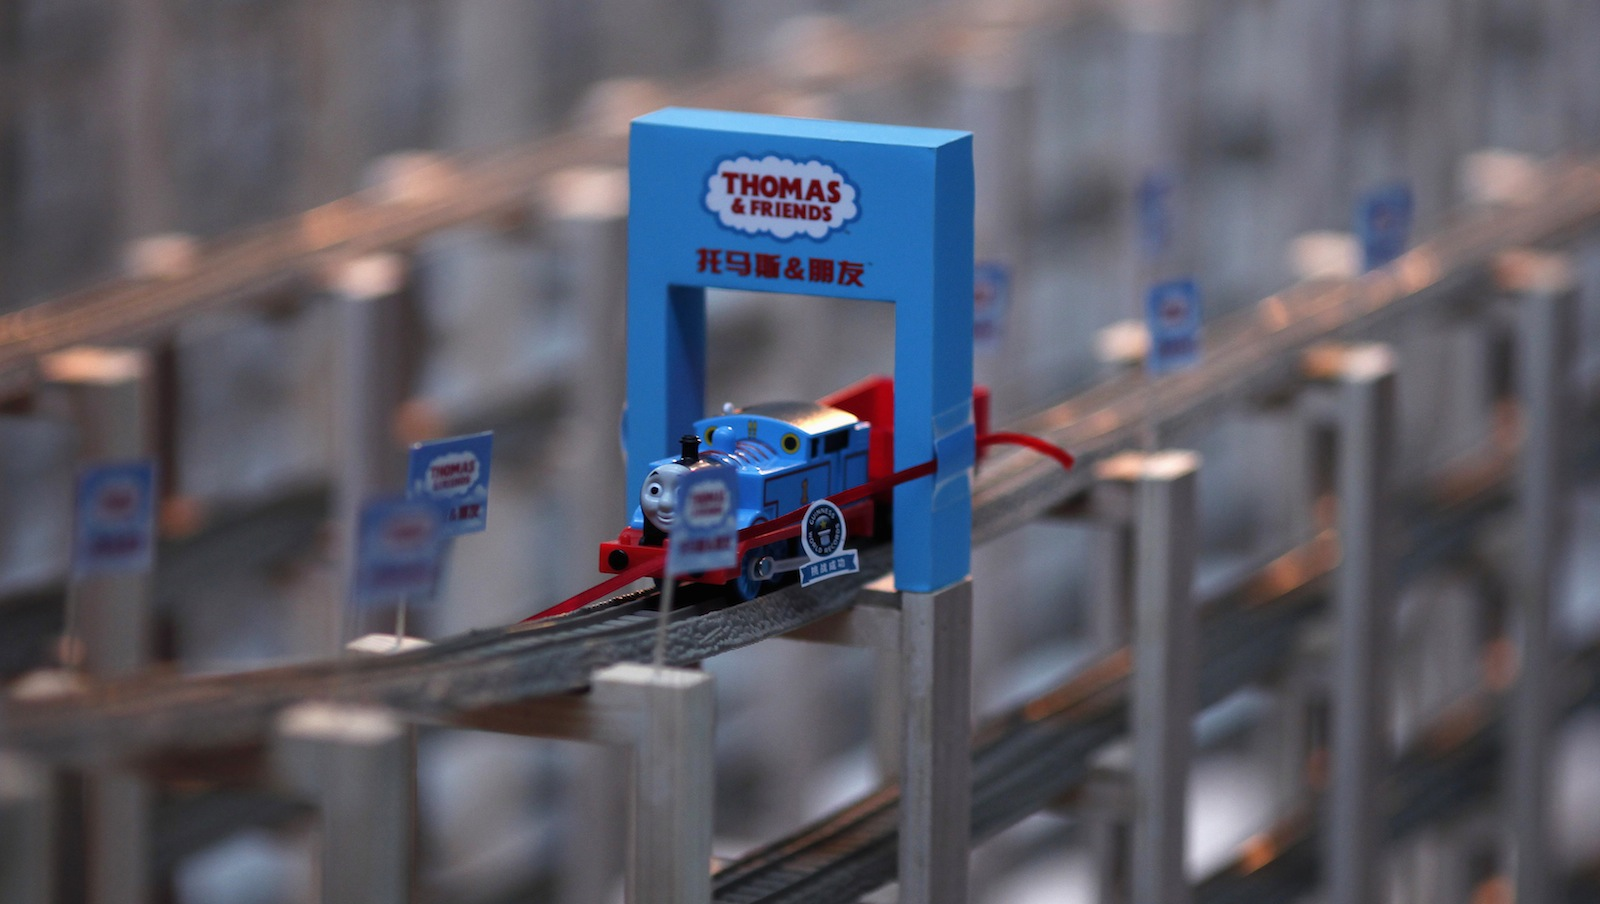 A staff member watches as a toy train travels along the 2.888-kilometer plastic track during an event organized by toy manufacturer Mattel to set a Guinness World Record in Shanghai November 24, 2012. Thomas & Friends, a brand belonging to the world's largest toy manufacturer Mattel, set the new record for the World's Longest Plastic Toy Train Track. The track was composed of 13,769 individual sections of plastic toy train track, forming a total of seven layers of track. The new world-record-winning track covers approximately 200 square meters, and the total length of the track measures six times the height of the Oriental Pearl TV Tower, 20% longer than the previous world record set in Odaiba, Japan.